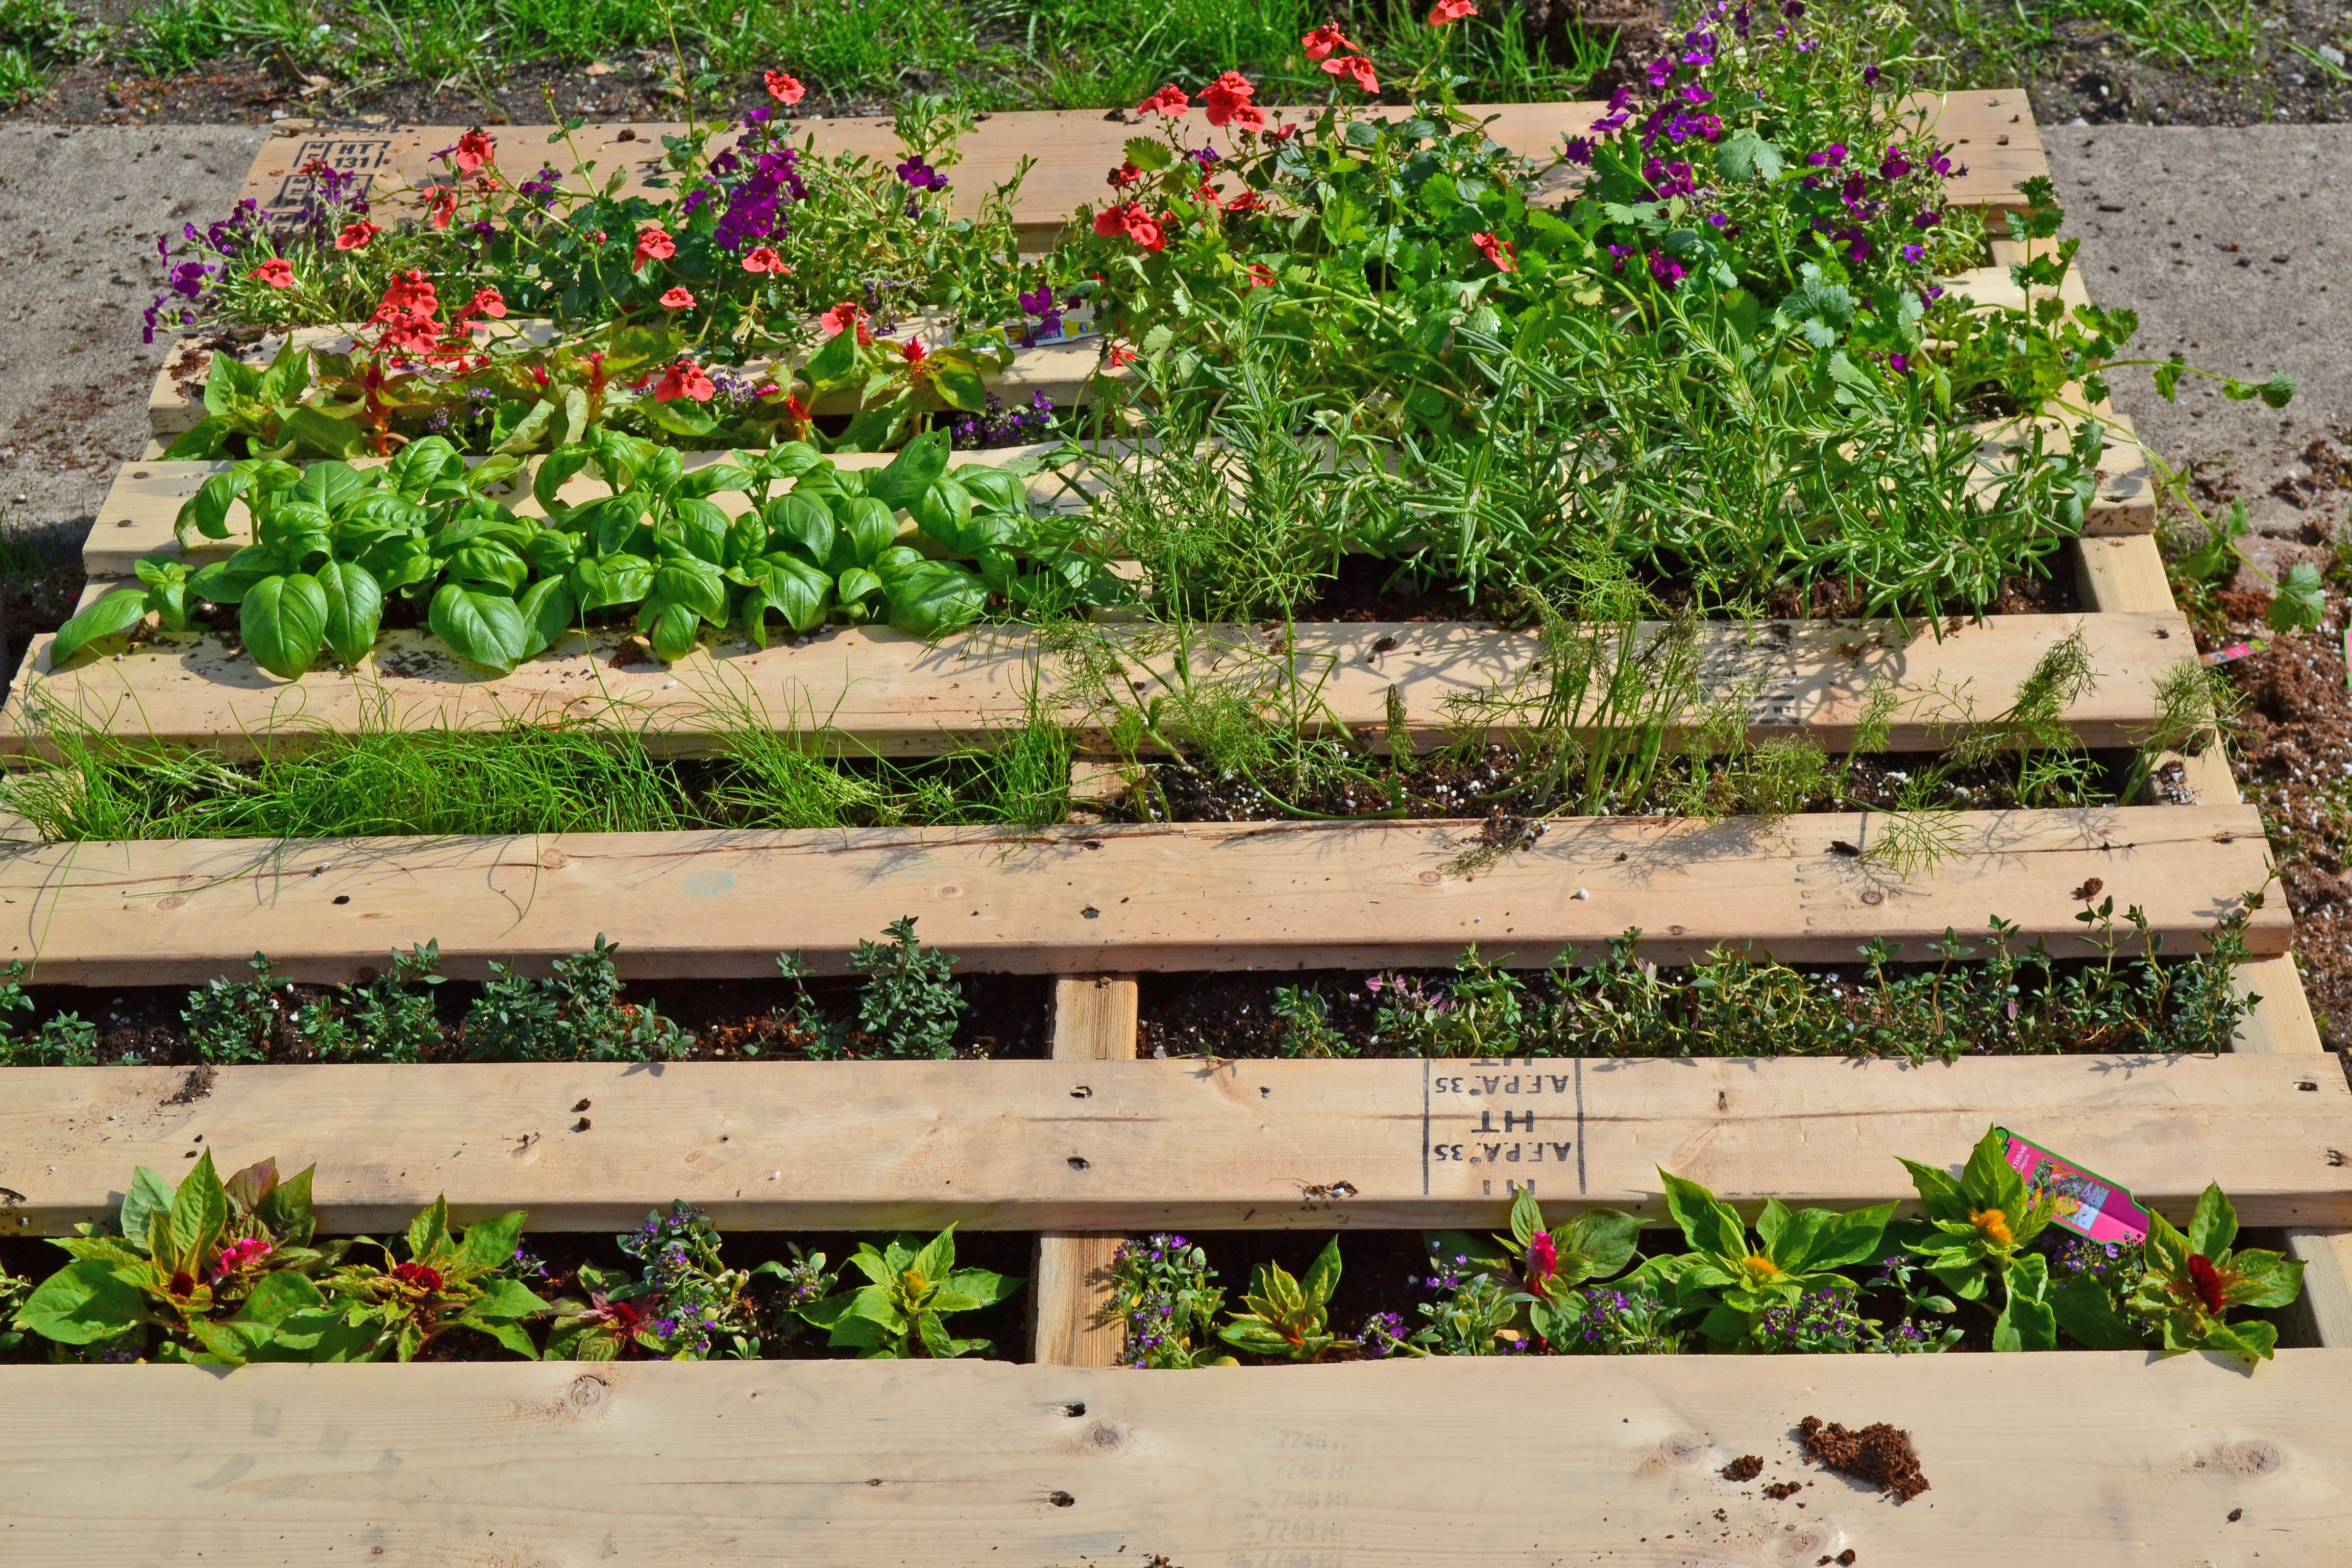 Here Is The Pallet Garden After I First Planted It (May 1, 2013)